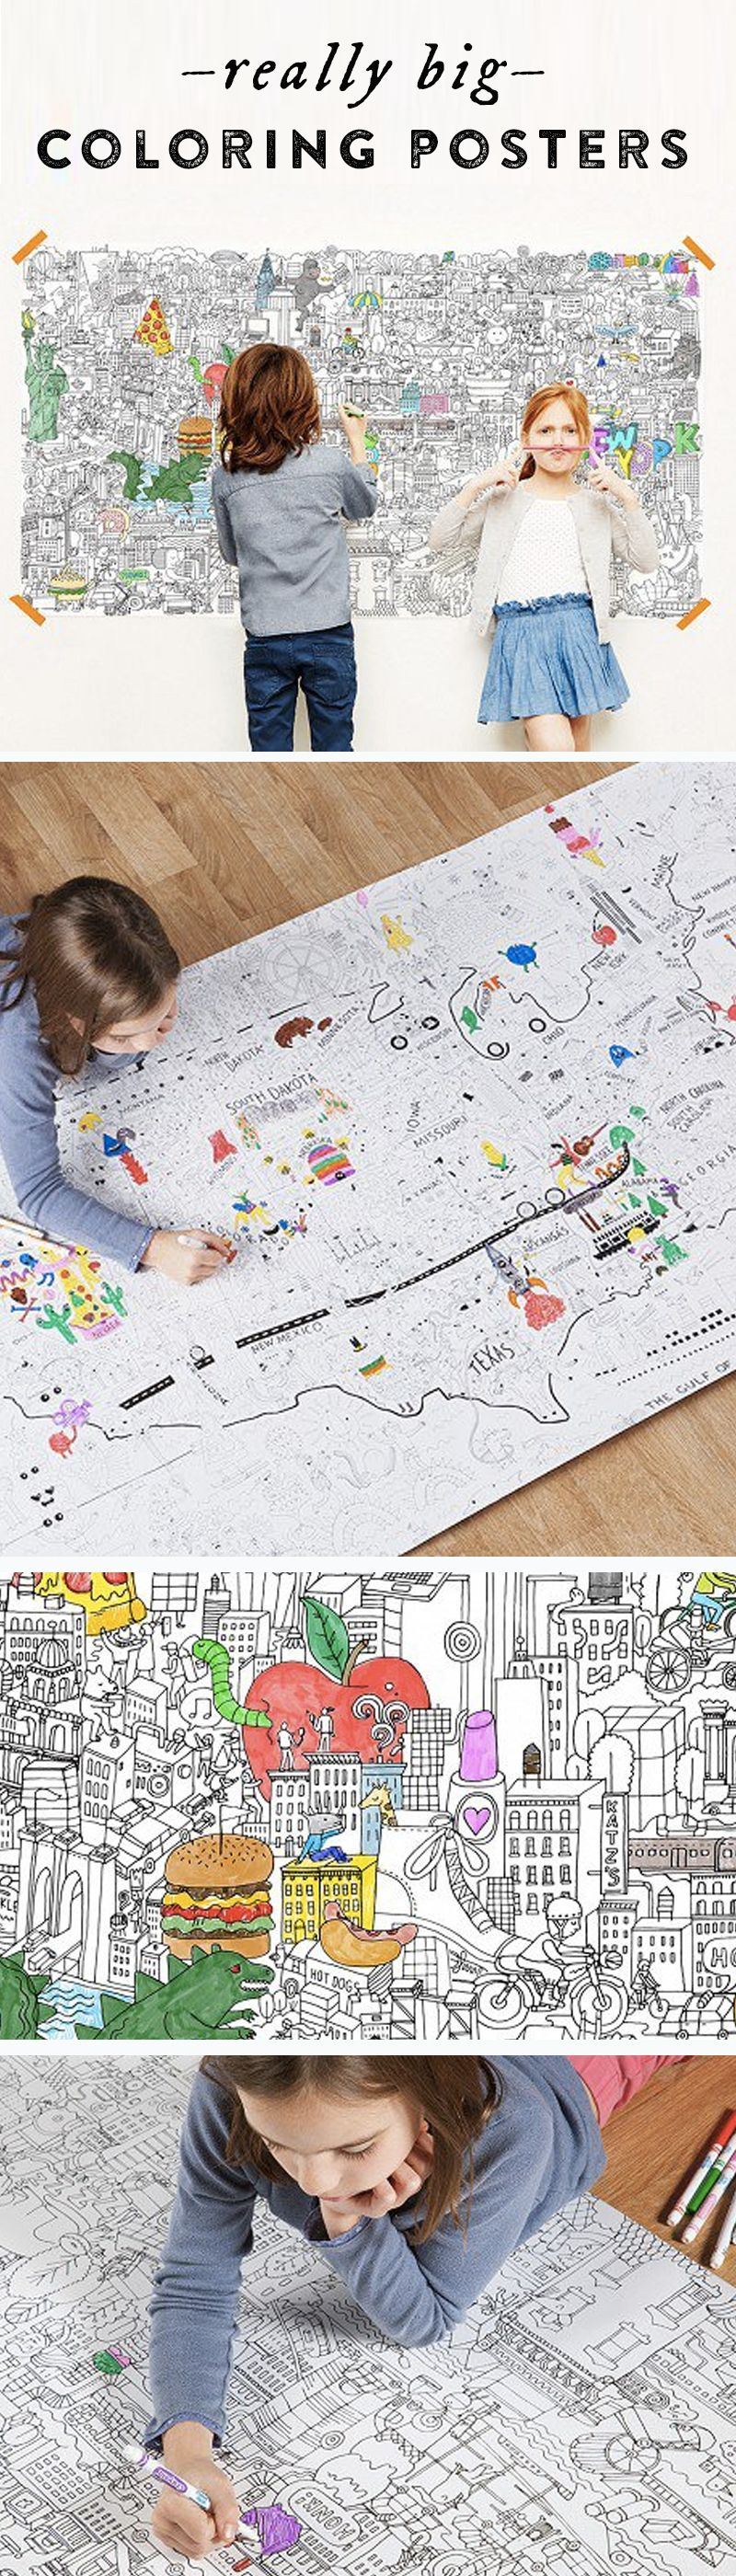 Love These Enormous Coloring Posters Chock Full Of Fun Detailed Drawings That Kids And Adults Will Be Extra Excited To Explore Fill In